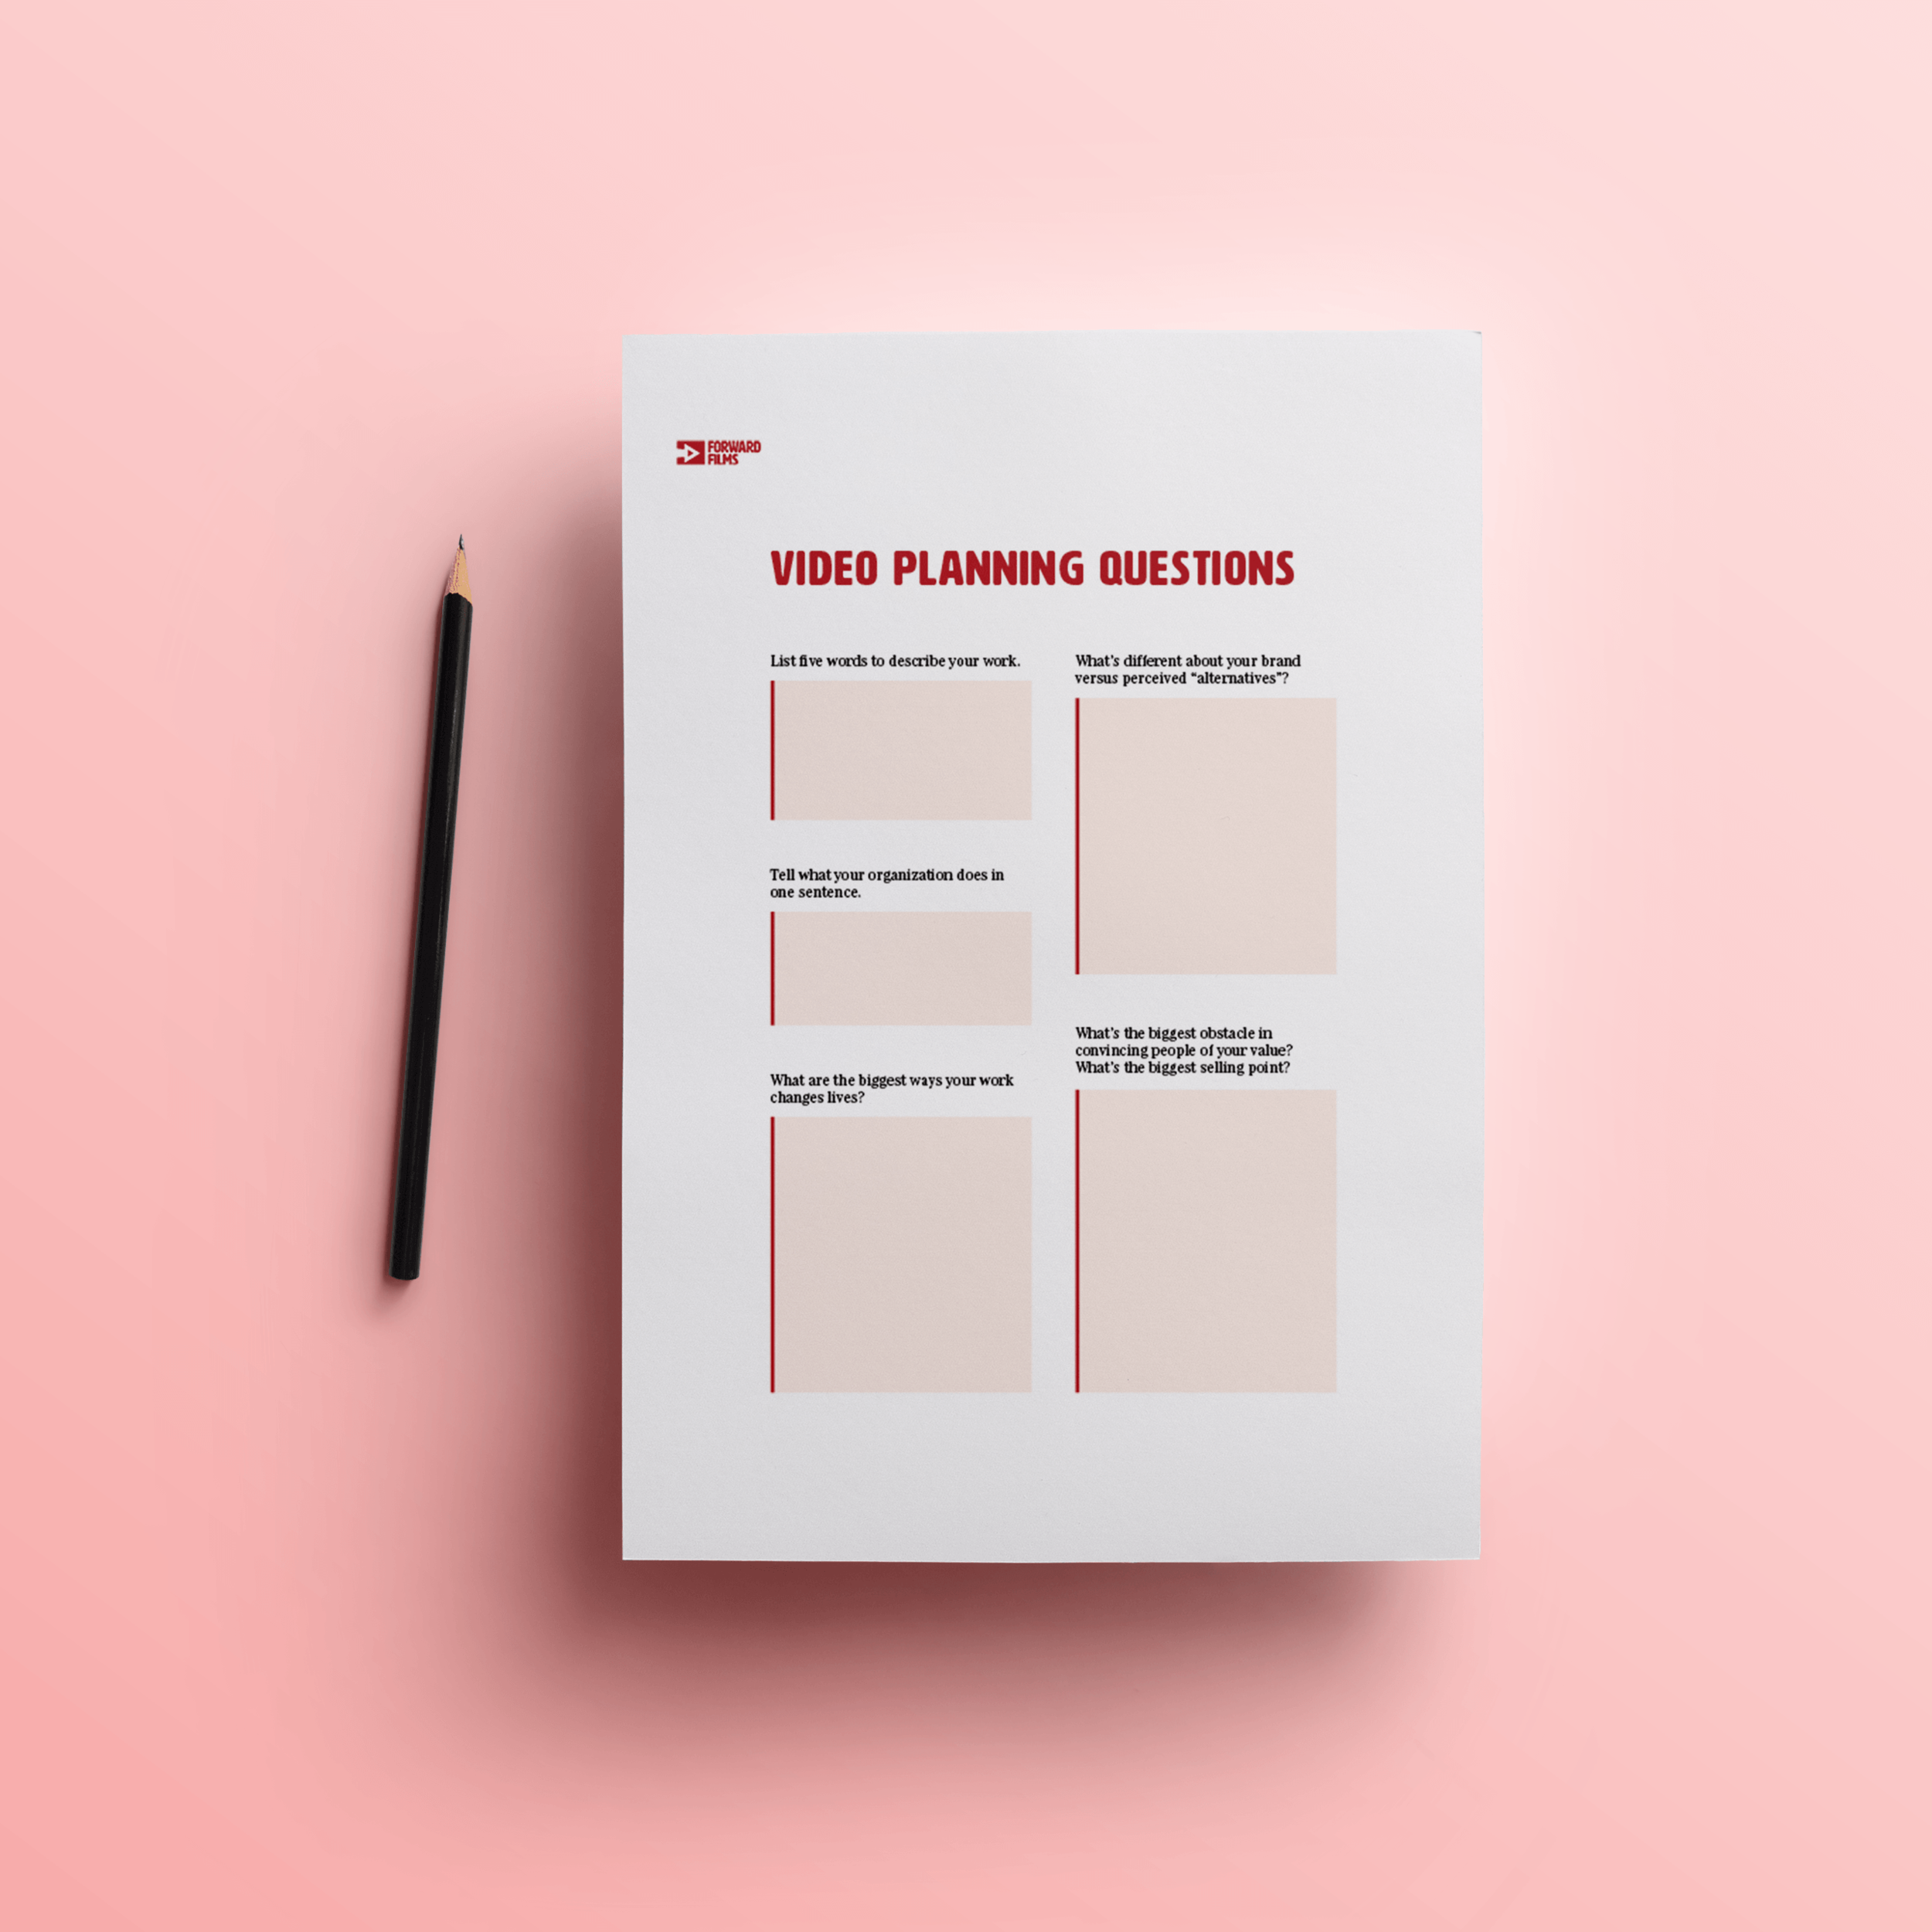 Video planning questionnaire mockup coral.png